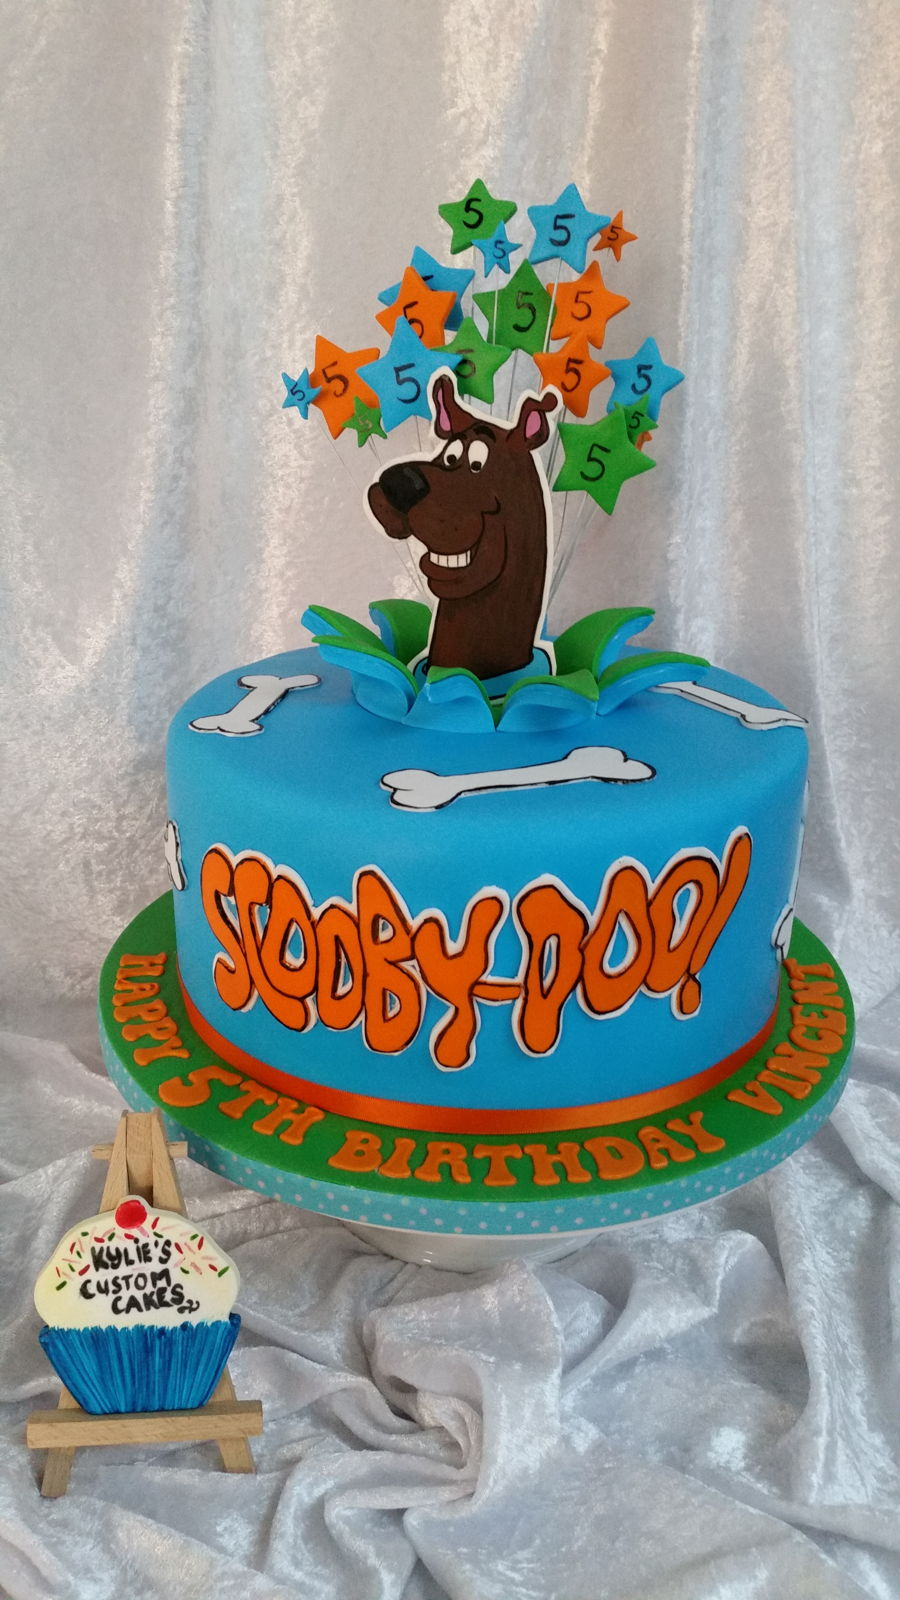 Scooby Dooby Doooooooo on Cake Central